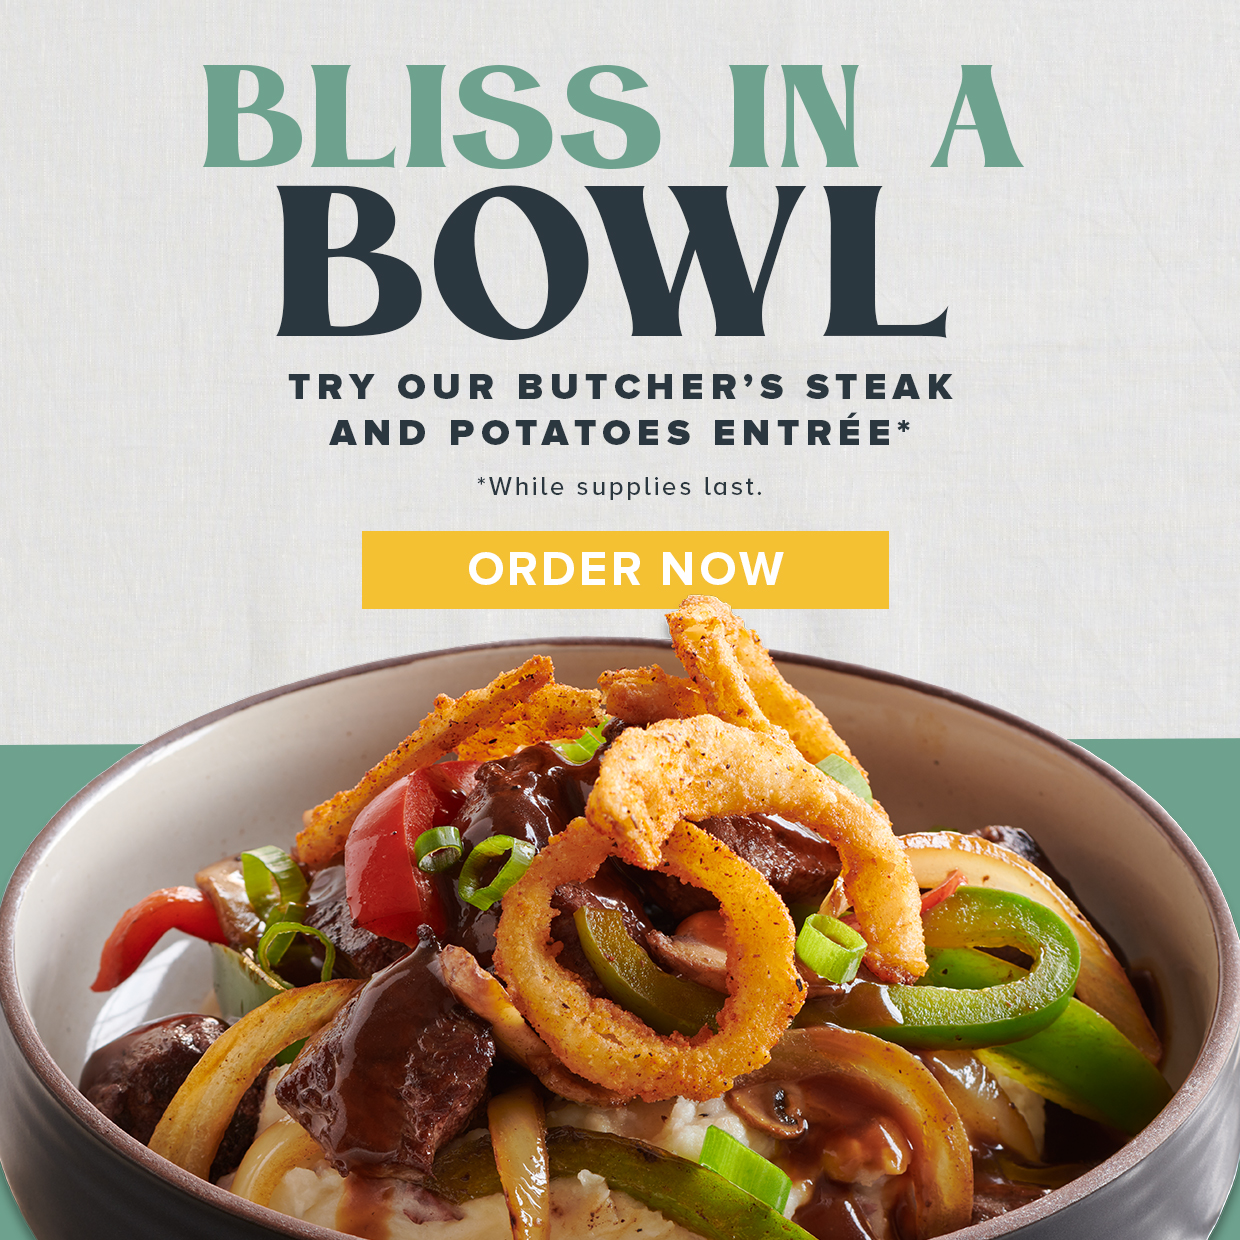 Bliss in a bowl. Try our new butcher's steak and potatoes entrée while supplies last. Order now